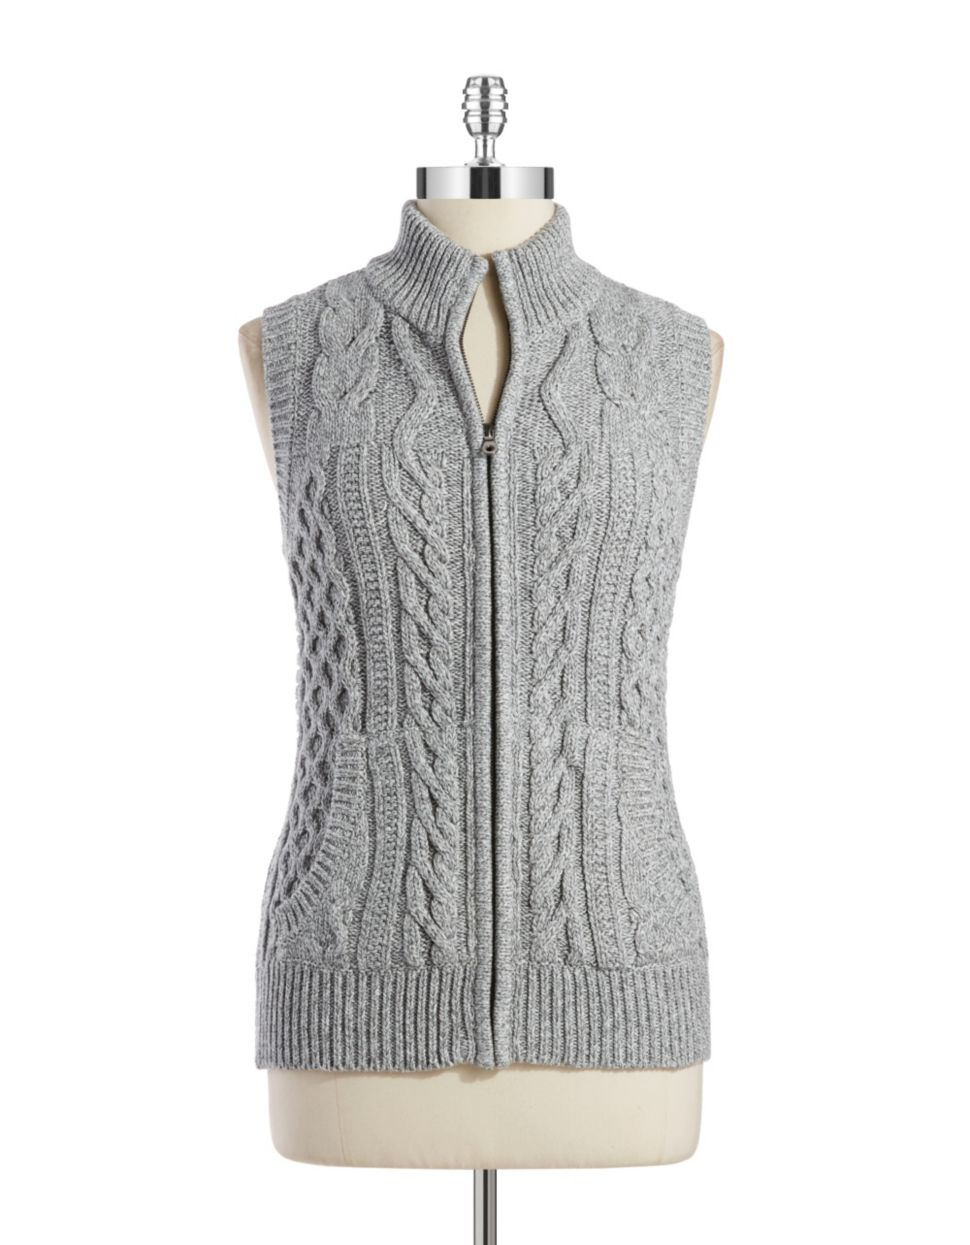 Find the latest and trendy styles of knit sweaters at ZAFUL. We are pleased you with the latest trends in high fashion knit sweaters.